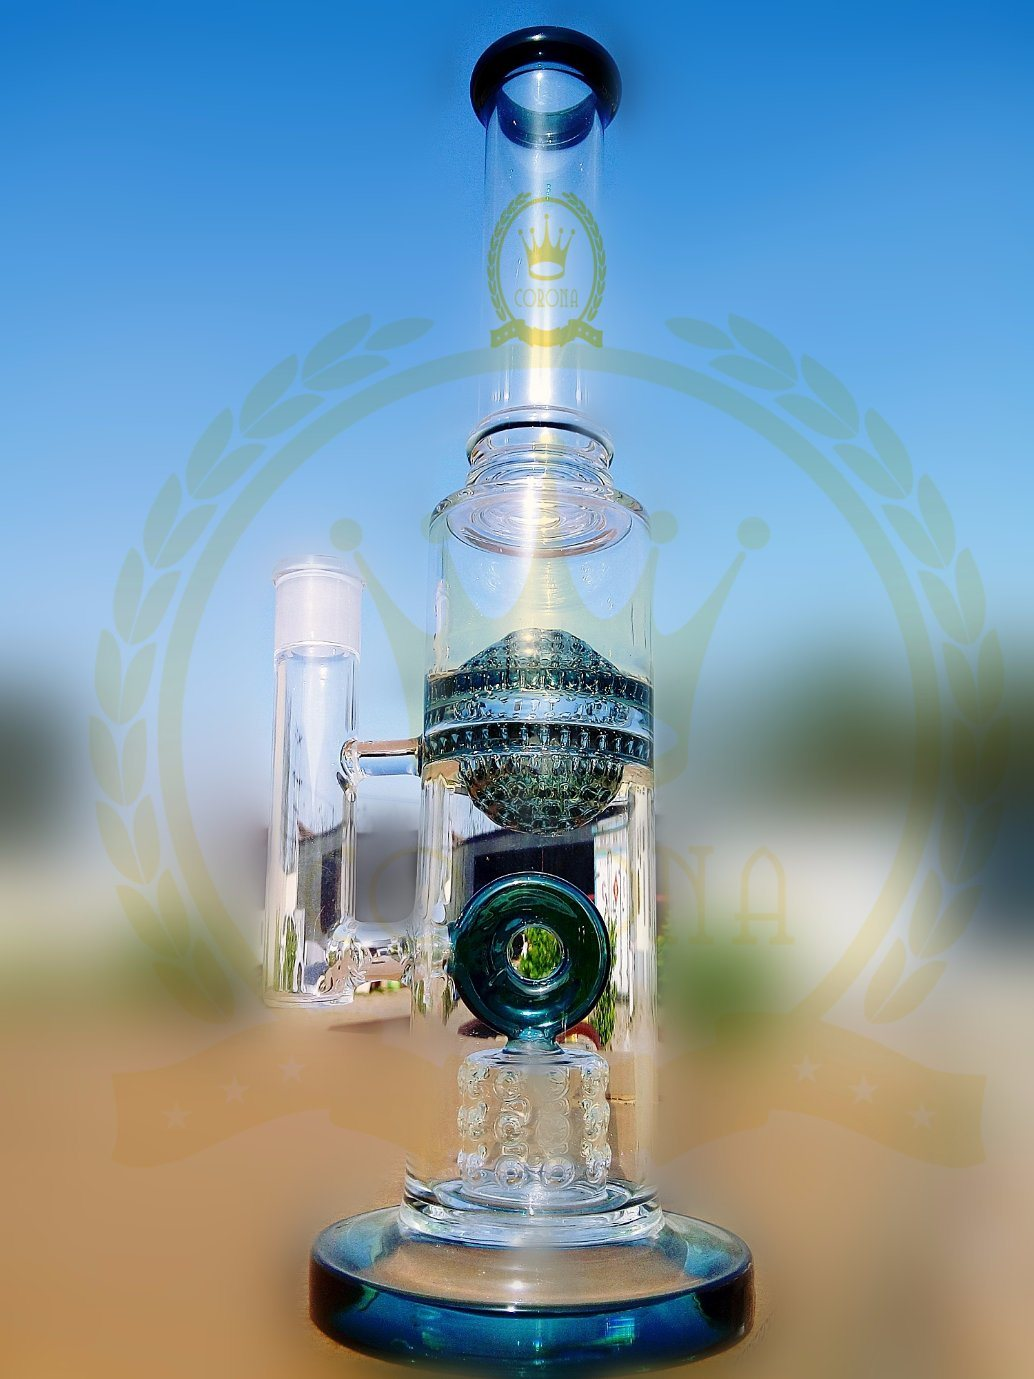 Corona Wholesale Factory Heady Recycler Klien Glass Water Pipe with Jet Perc